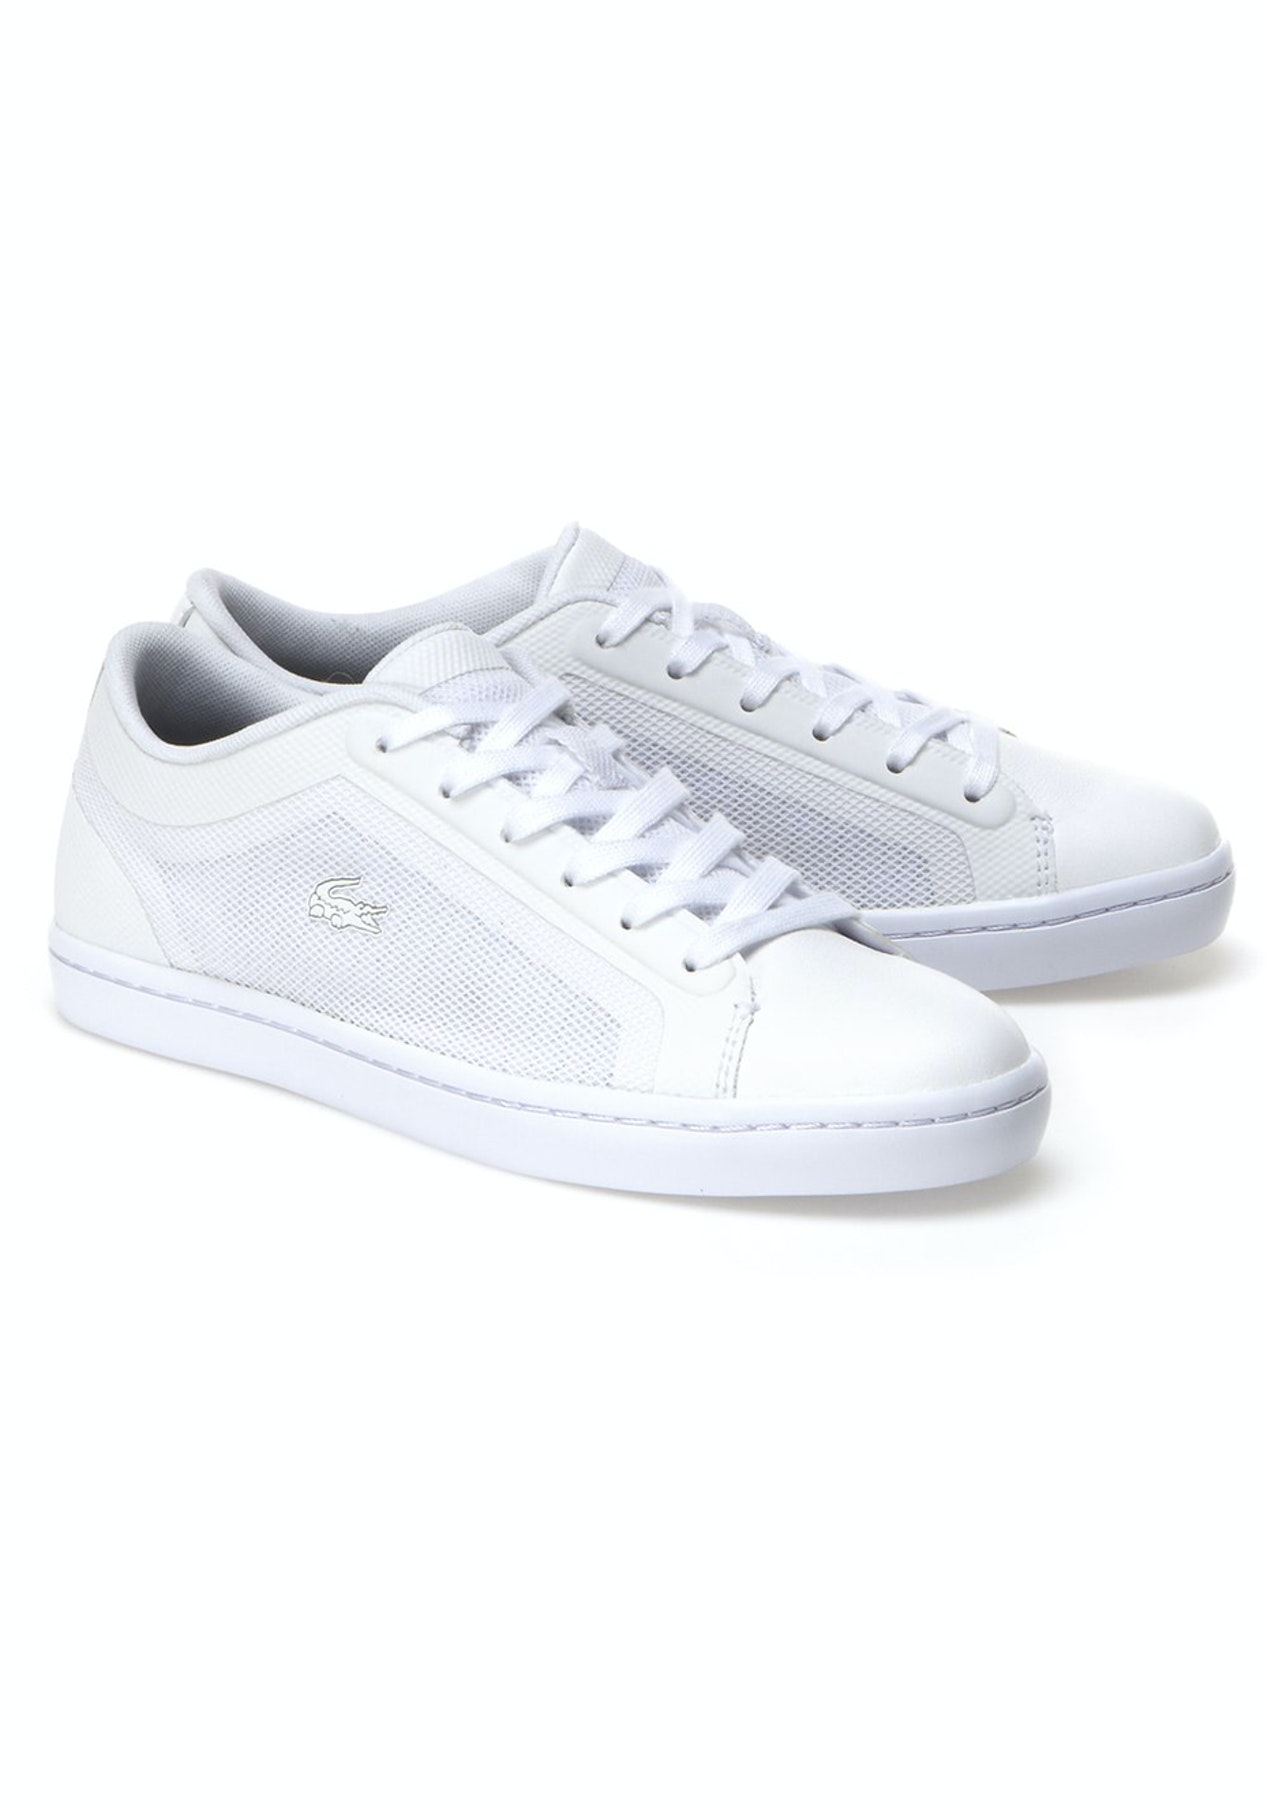 ec26968d446cd2 Womens Lacoste - Straightset 116 4 - White - Shoe Clearance - Onceit